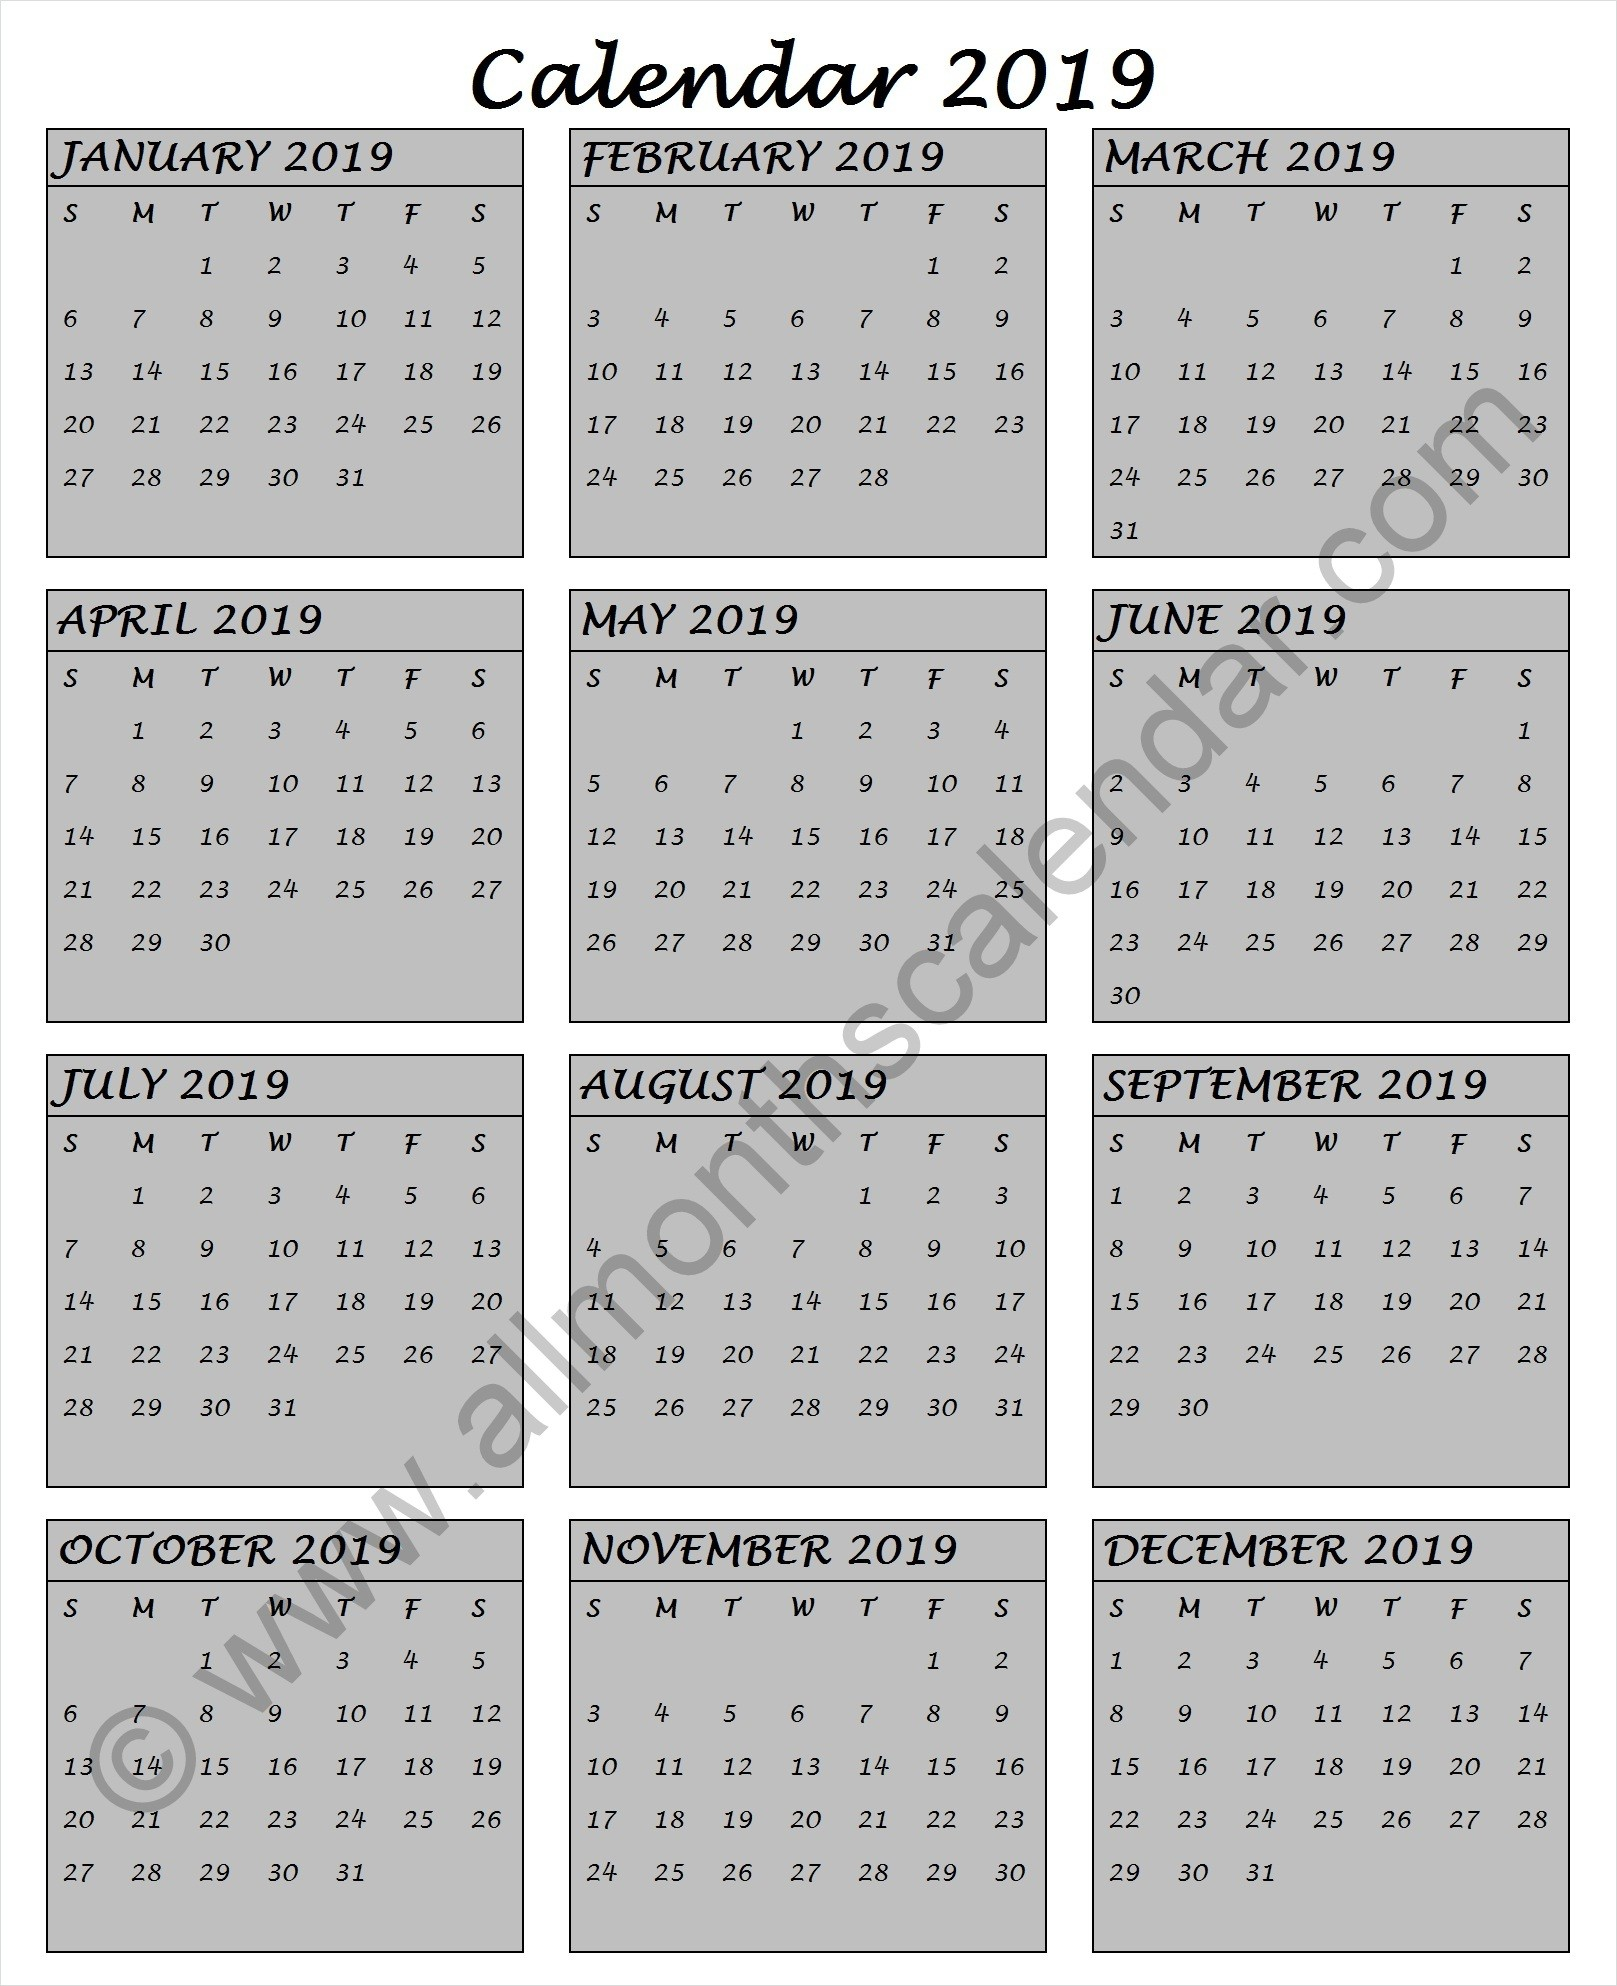 March 2019 Calendar Uk Printable Más Caliente August 2019 Calendar Excel Of March 2019 Calendar Uk Printable Más Recientemente Liberado June 2019 Calendar Word Lara Expolicenciaslatam